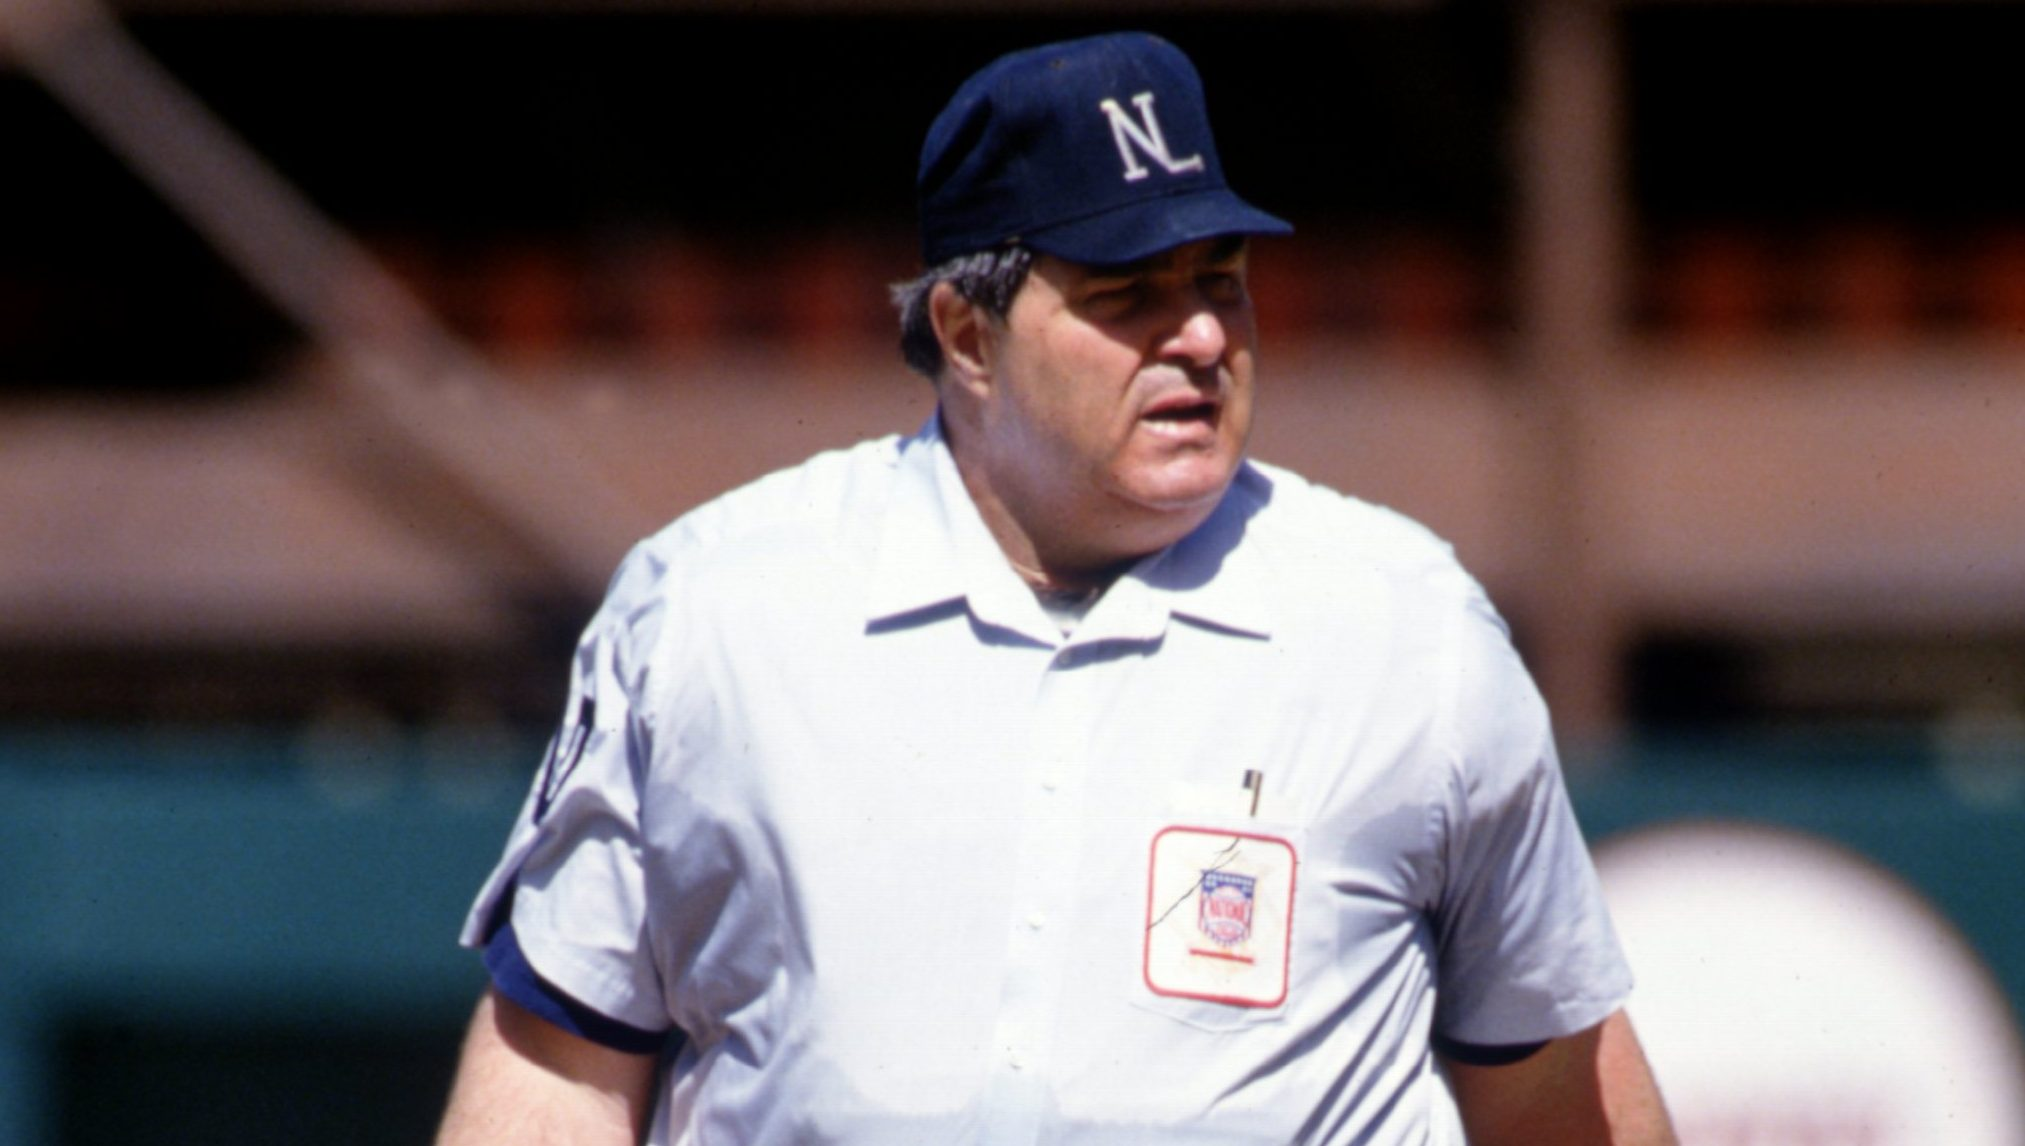 Today in Baseball History: Umpire John McSherry dies after collapsing on the field